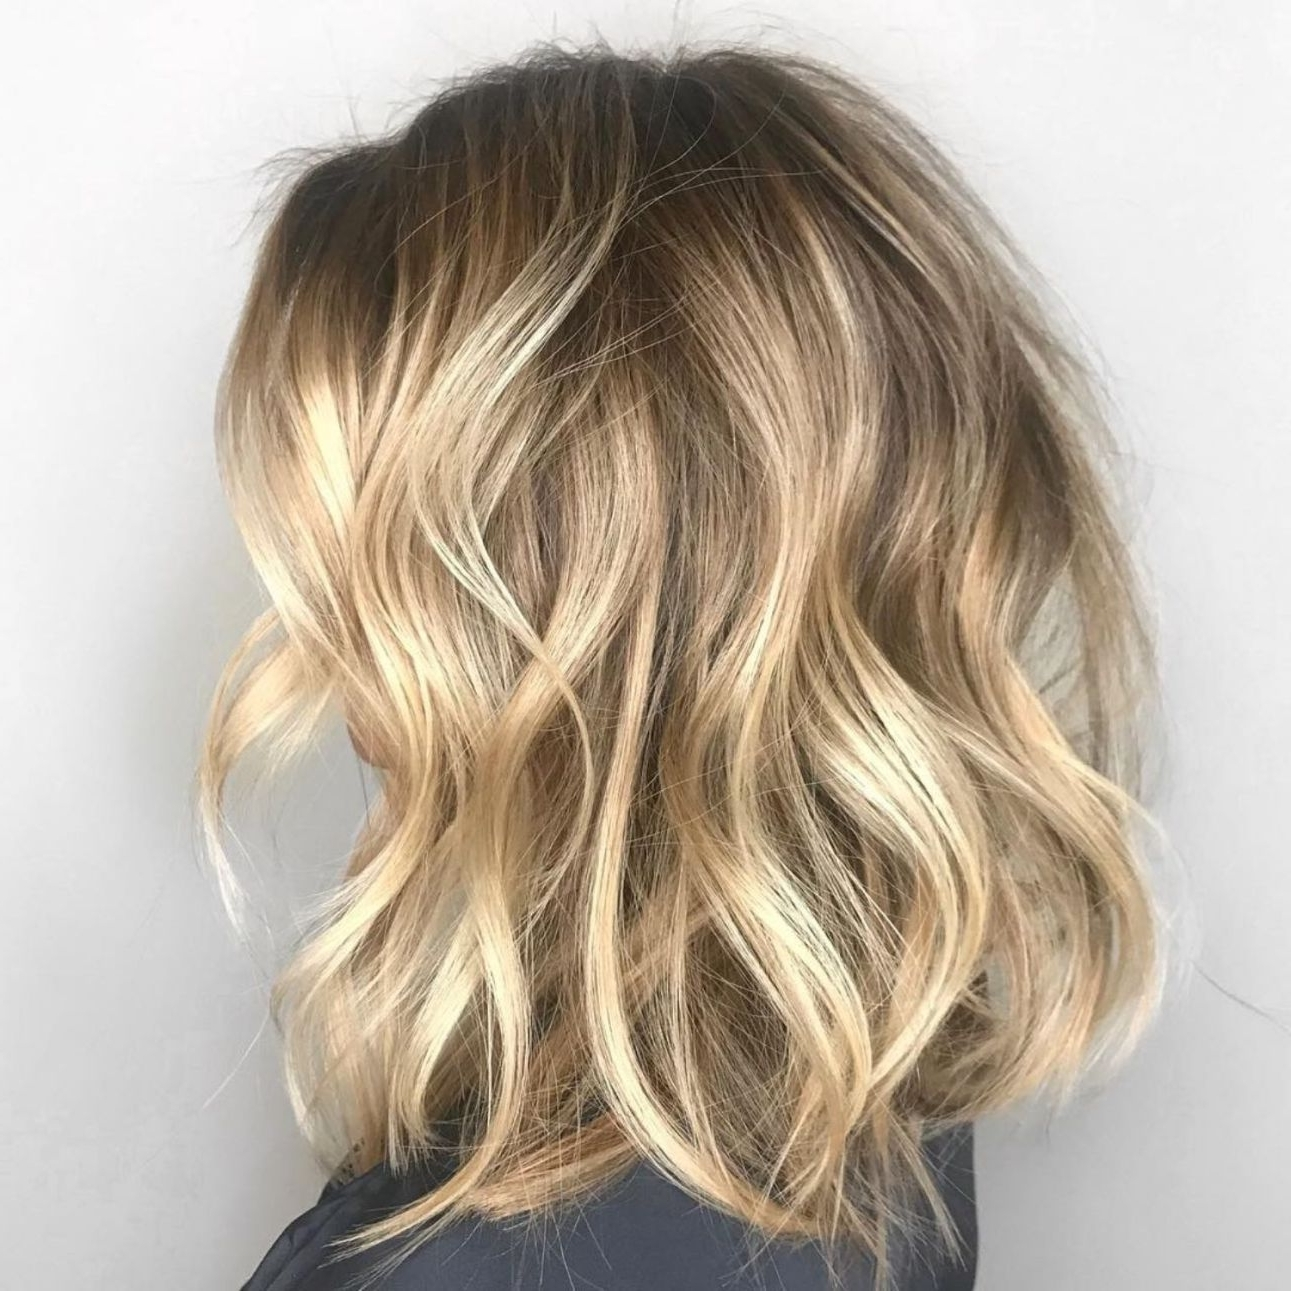 50 Gorgeous Wavy Bob Hairstyles With An Extra Touch Of Femininity In Trendy Wavy Caramel Blonde Lob Hairstyles (View 6 of 20)